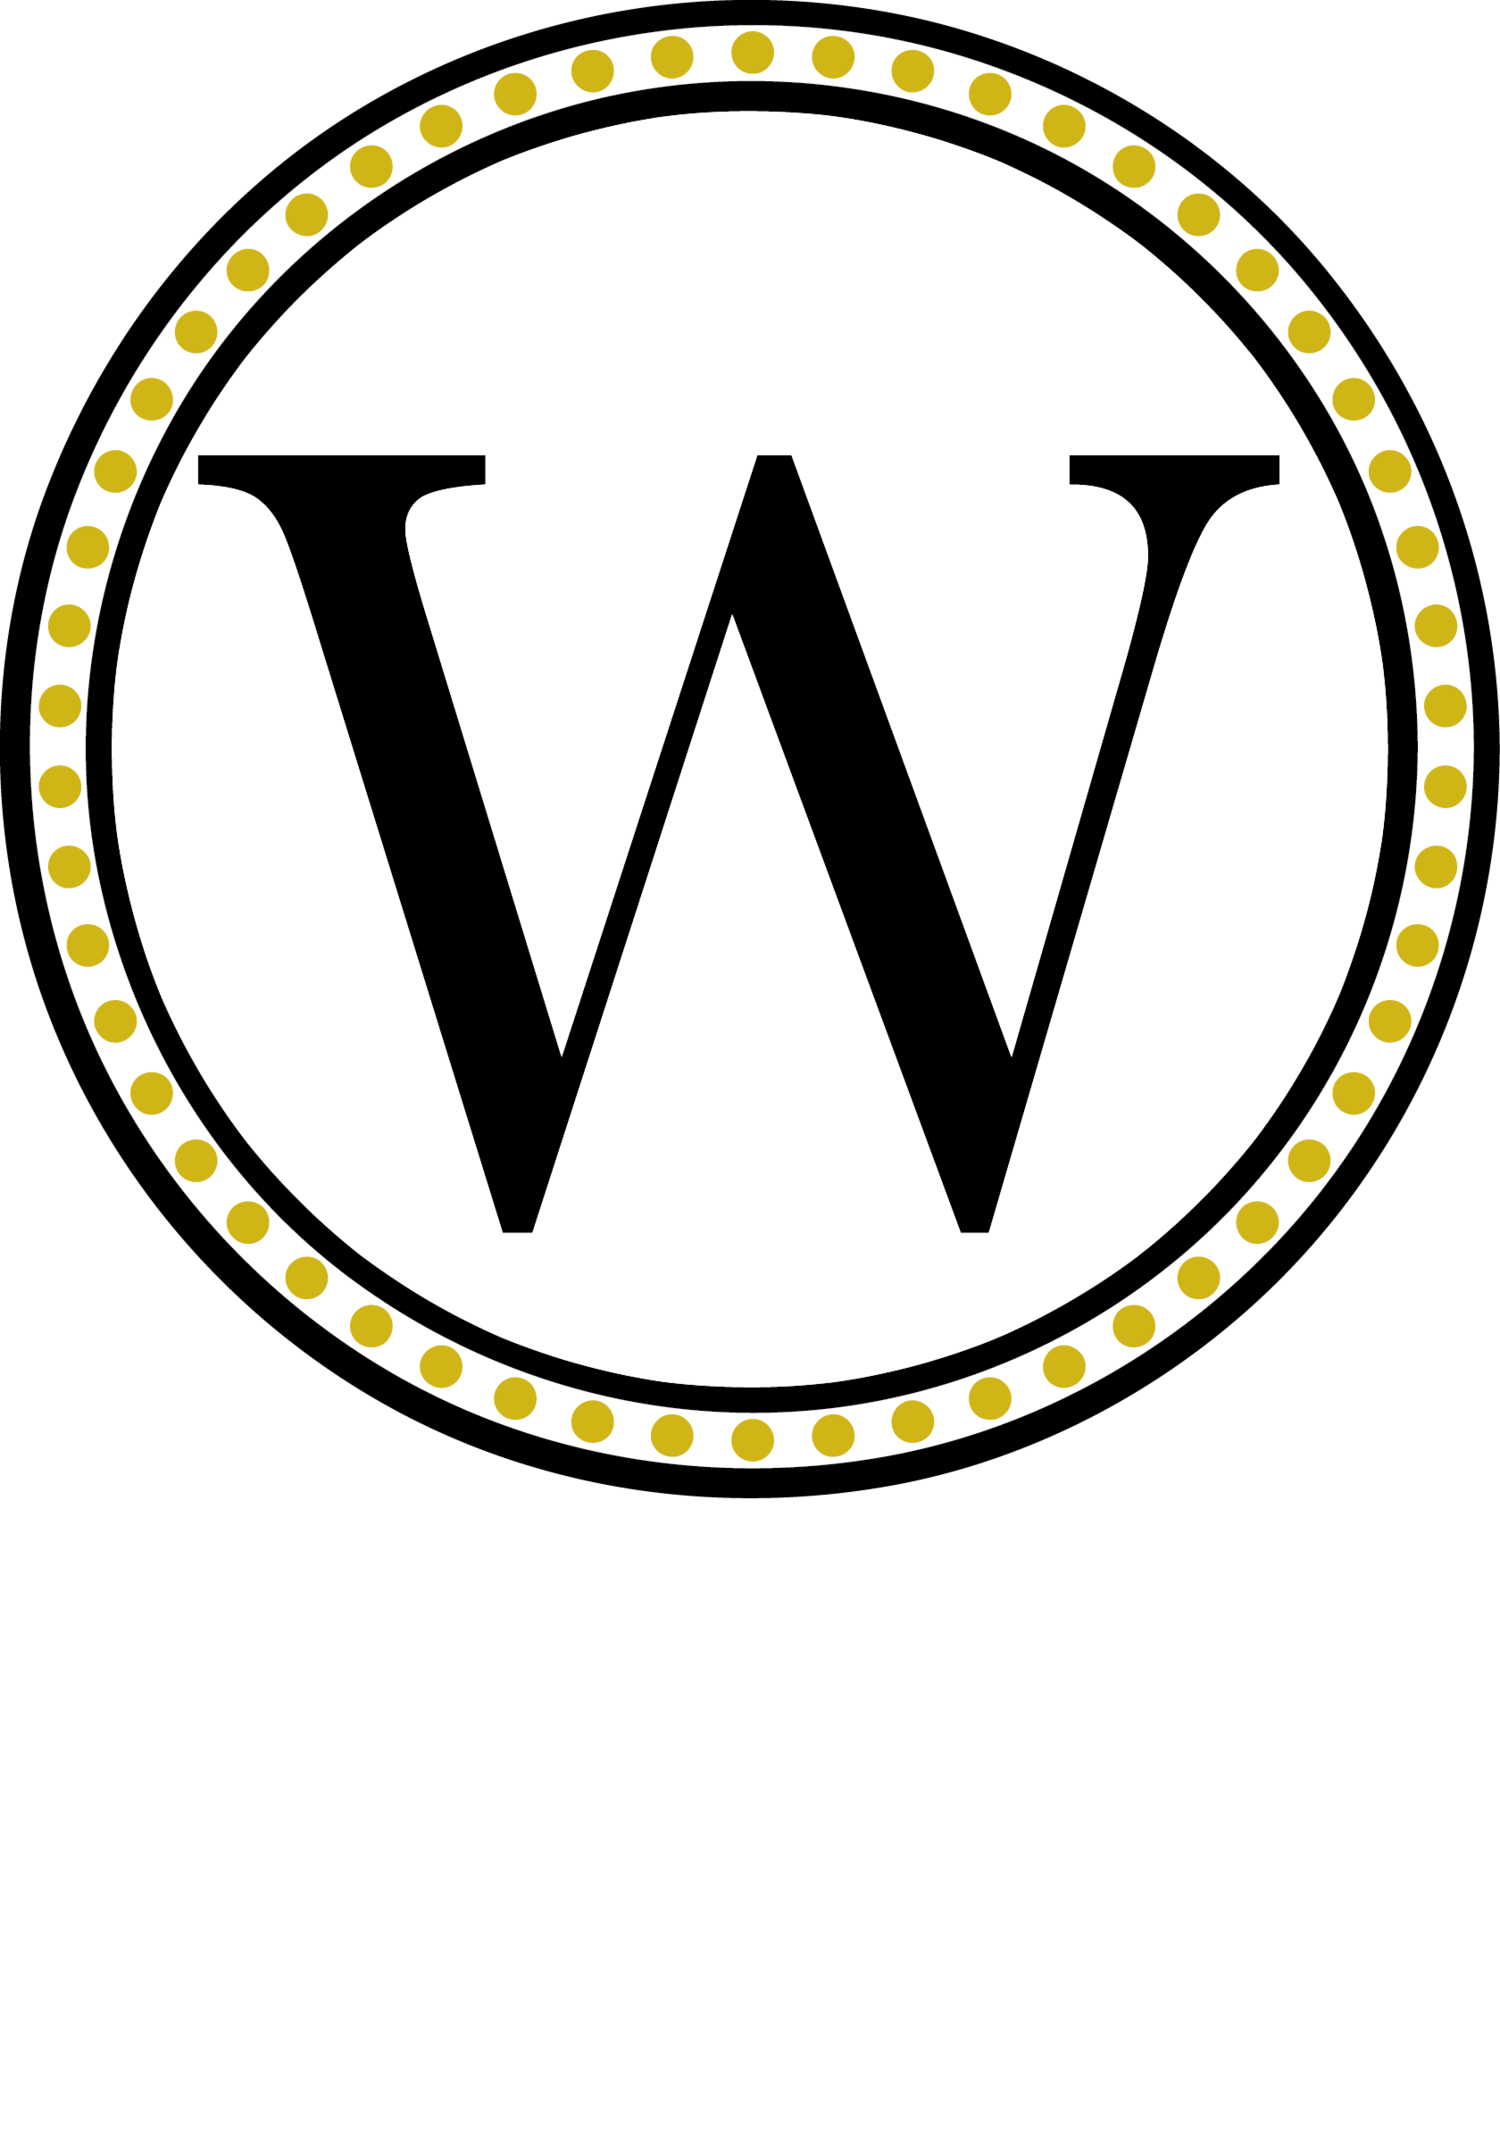 Wilson Nursing Center | A Family-Owned Nursing Home Near Ardmore, OK